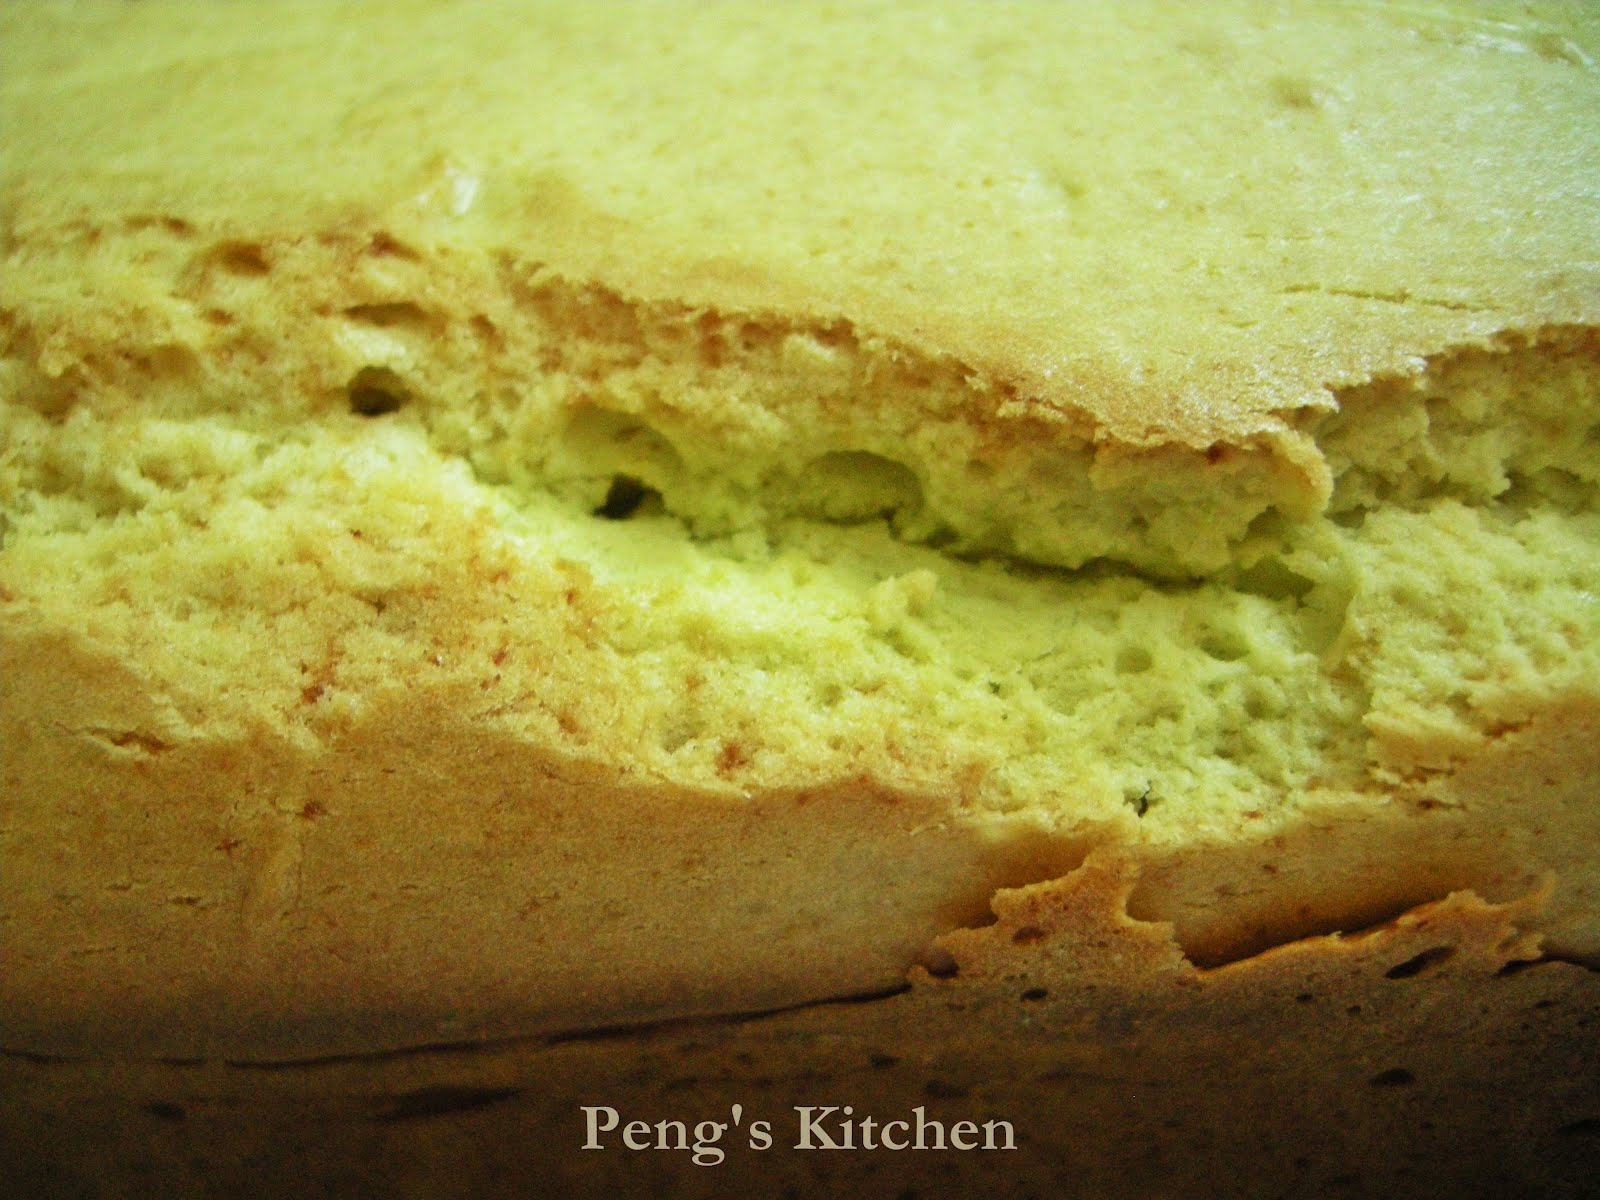 Peng's Kitchen: Avocado Milk Pound Cake